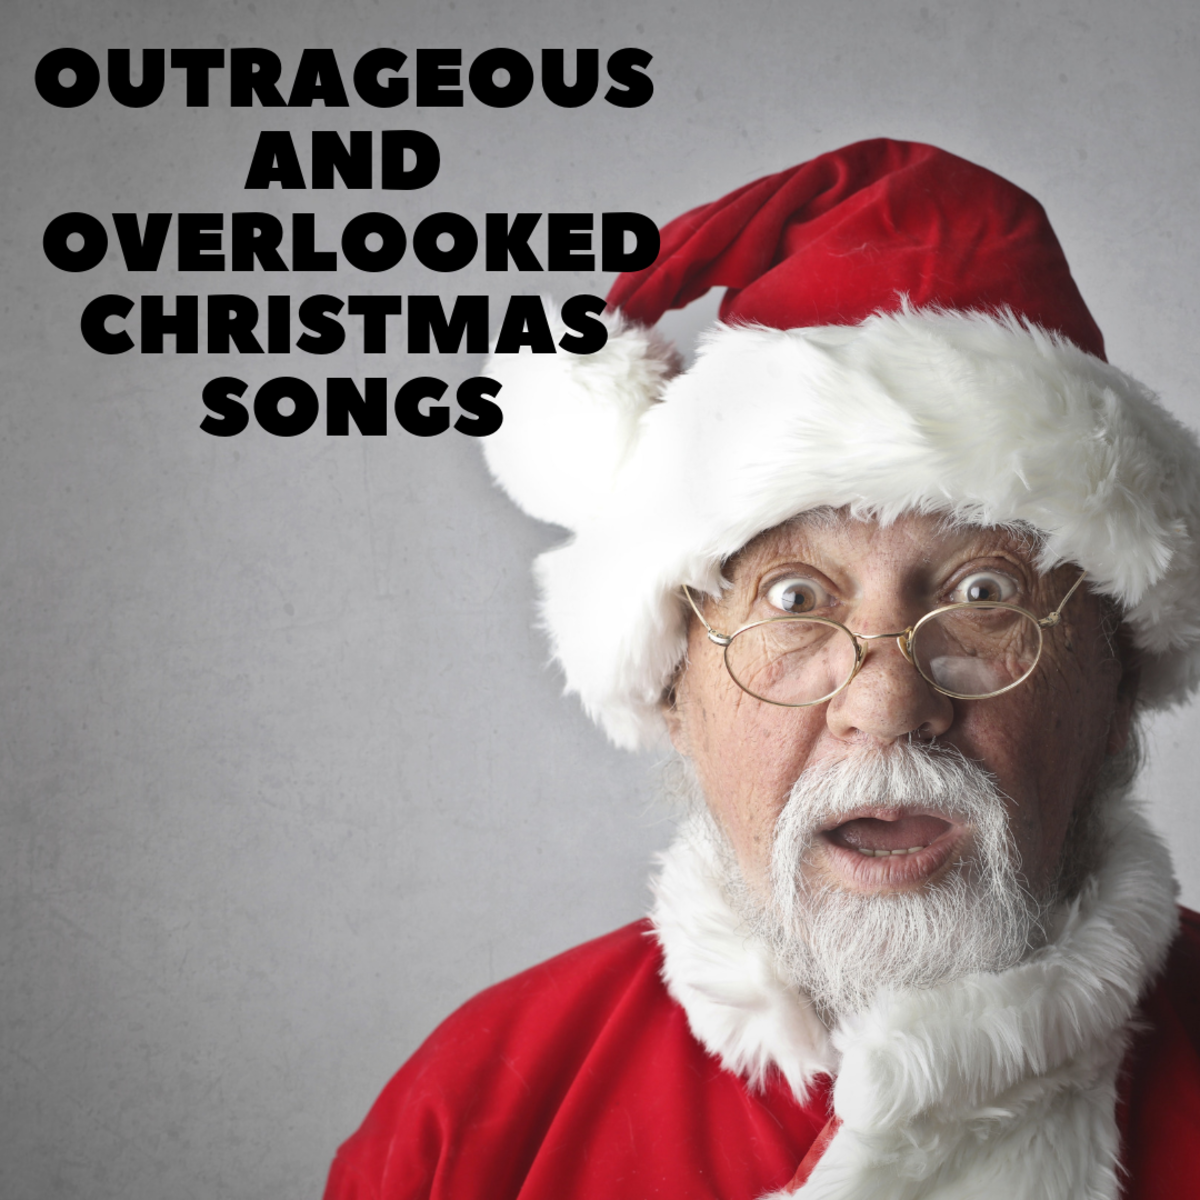 10 Overlooked Christmas Songs